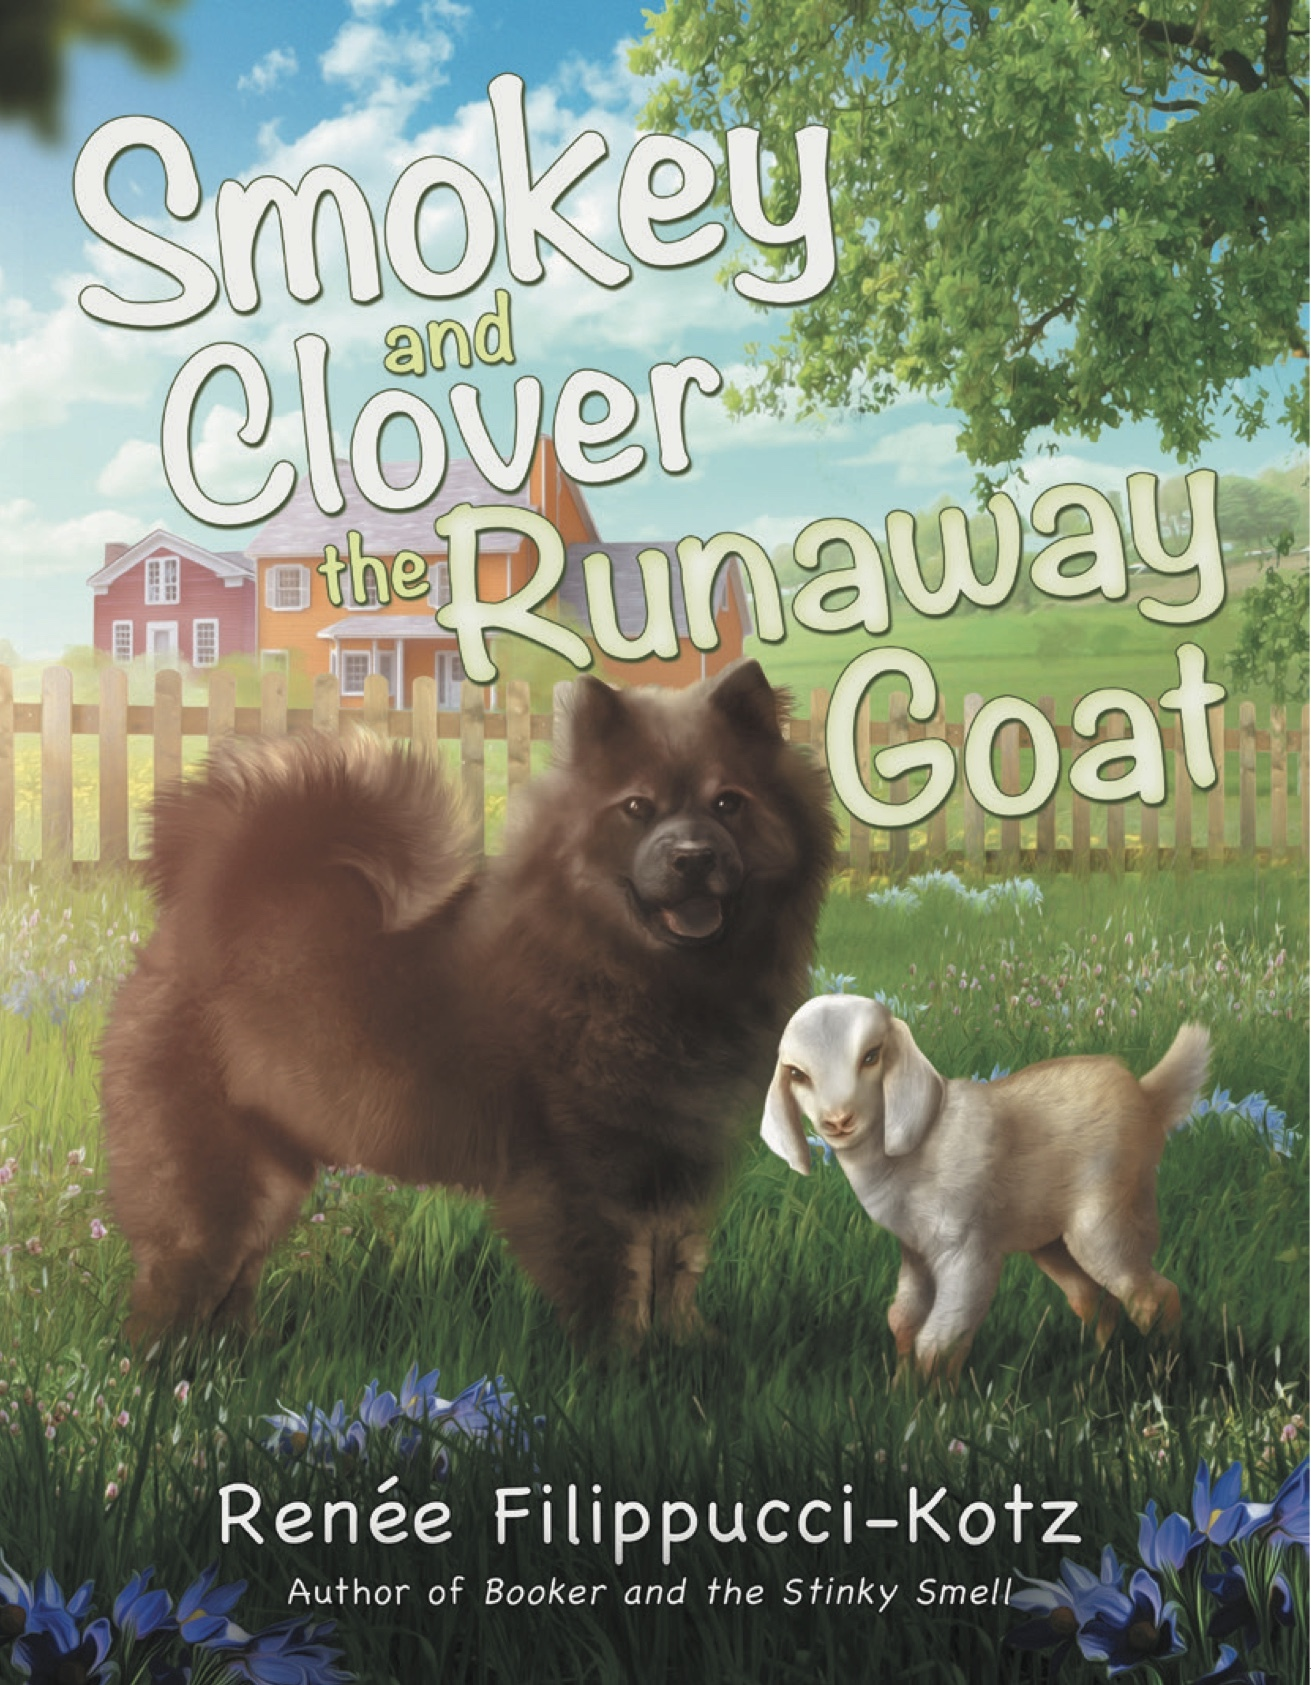 Smokey and Clover the Runaway Goat featured on another blog